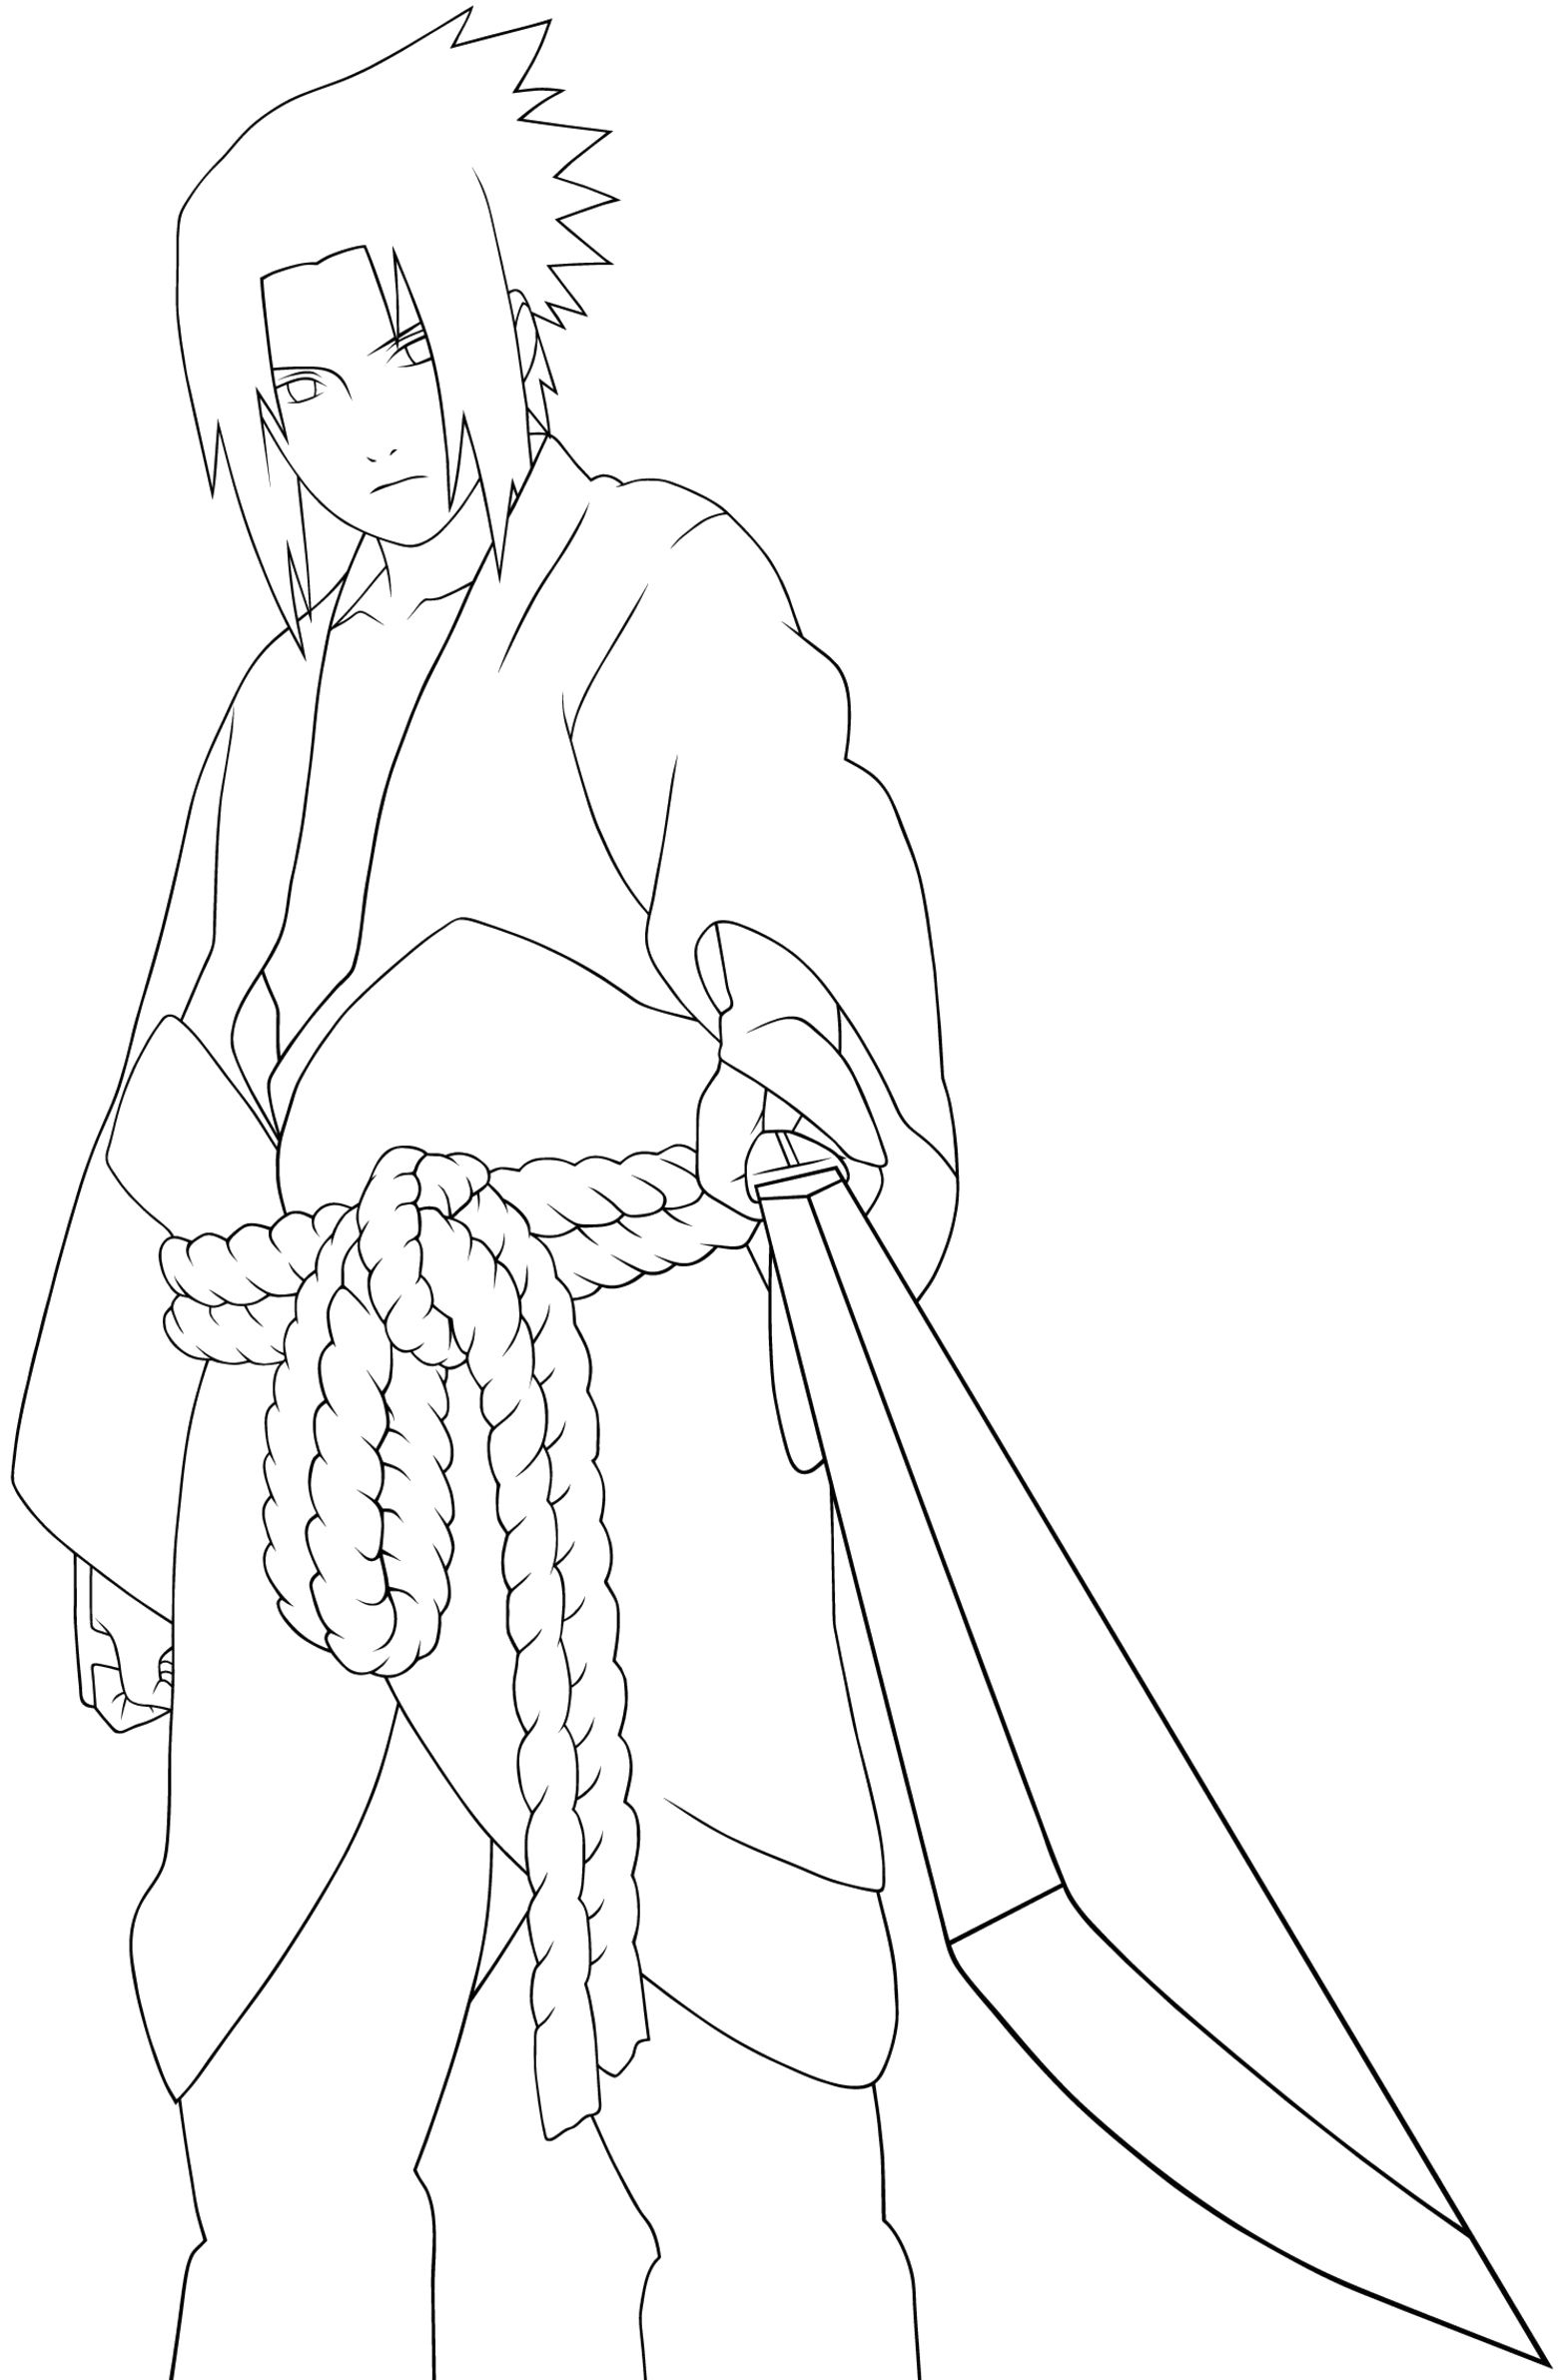 sasuke coloring pages A Very Cool Person Sasuke Coloring Pages | Naruto | Sasuke, Naruto  sasuke coloring pages